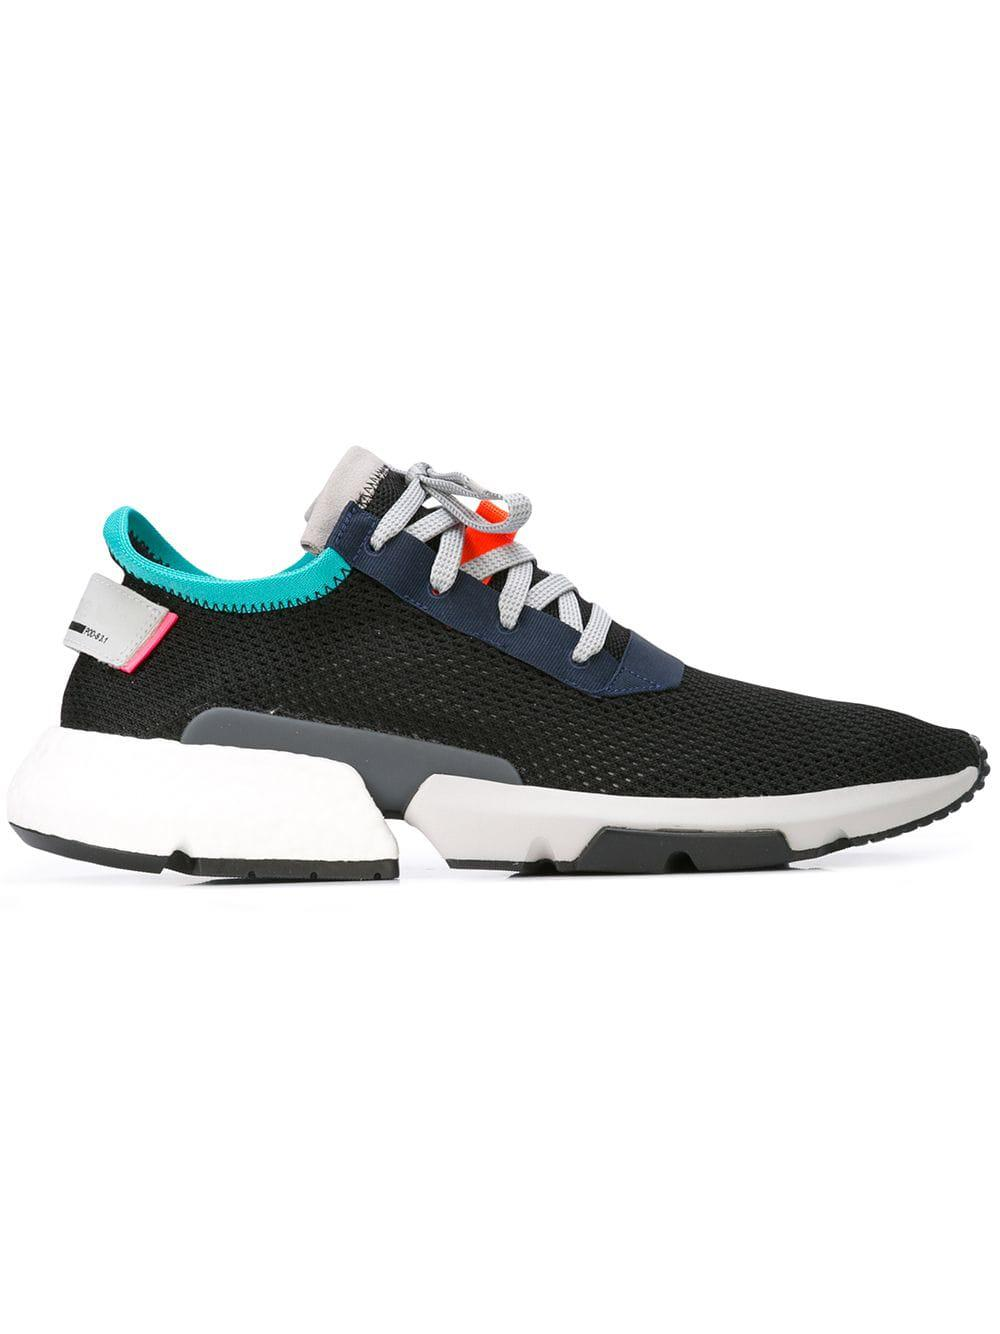 10493a5543ae Lyst - adidas Pod-s 3.1 Sneakers in Black for Men